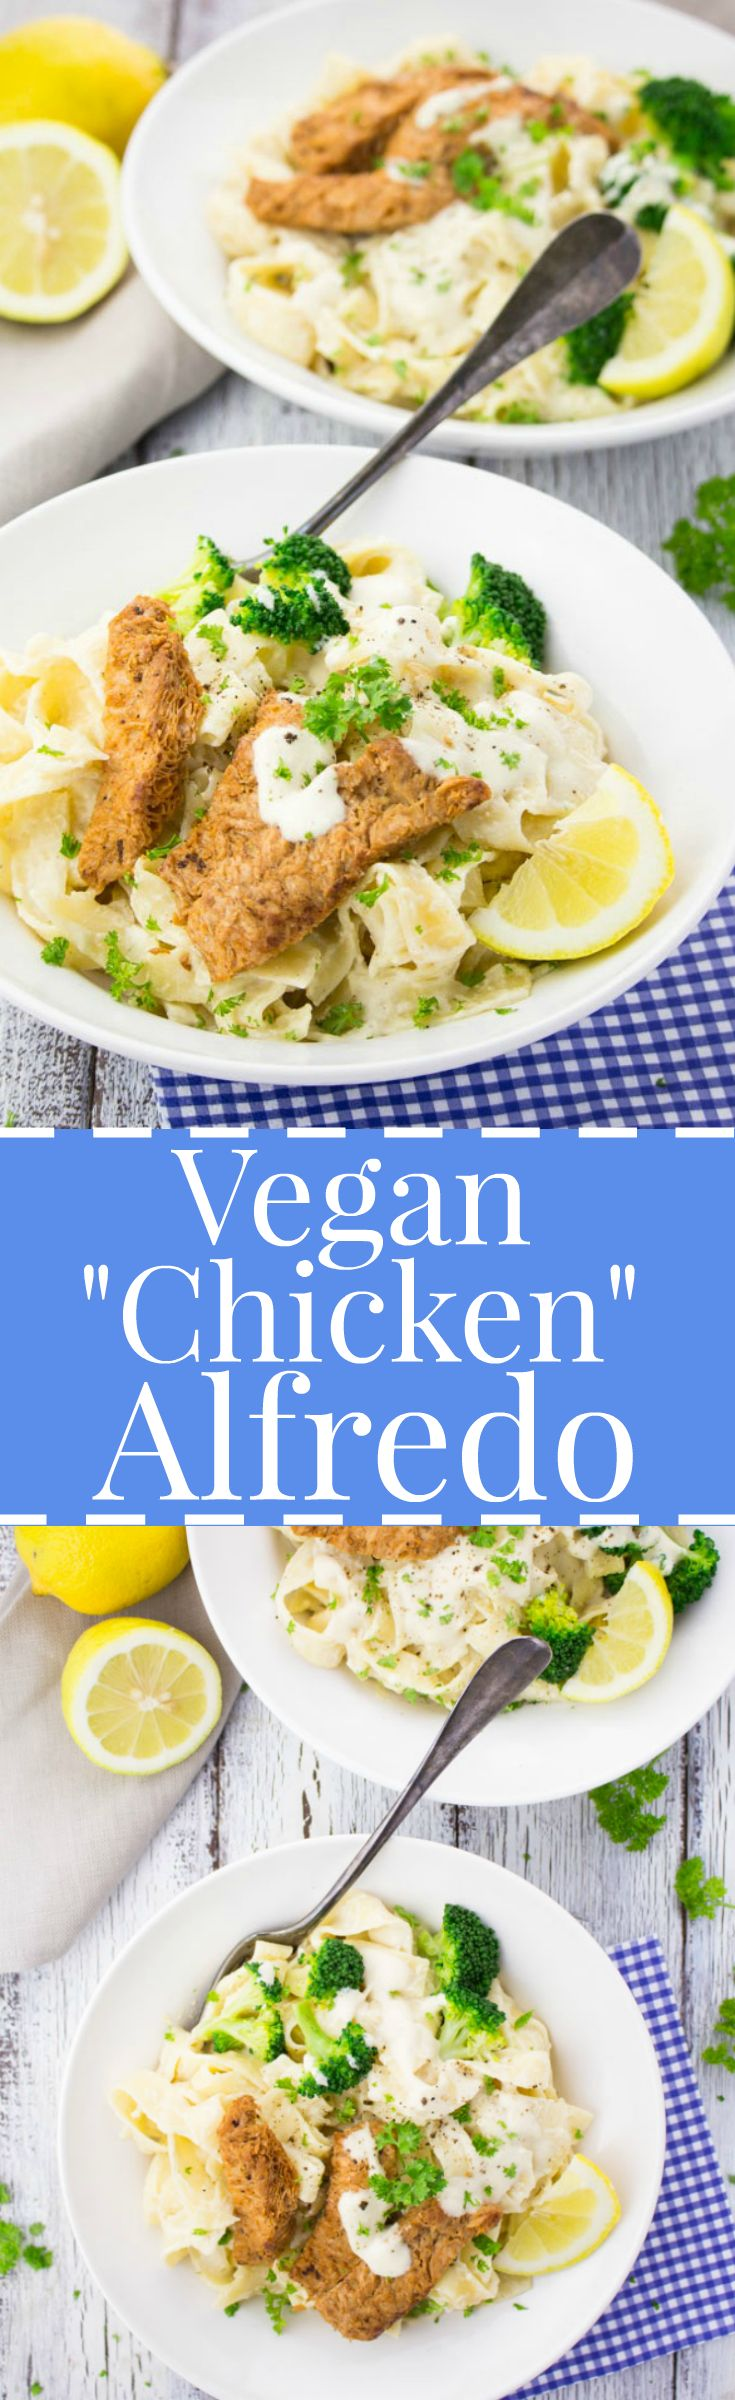 This vegan chicken Alfredo with textured vegetable protein (TVP) is so delicious, creamy, rich, and decadent. No dairy or meat needed!